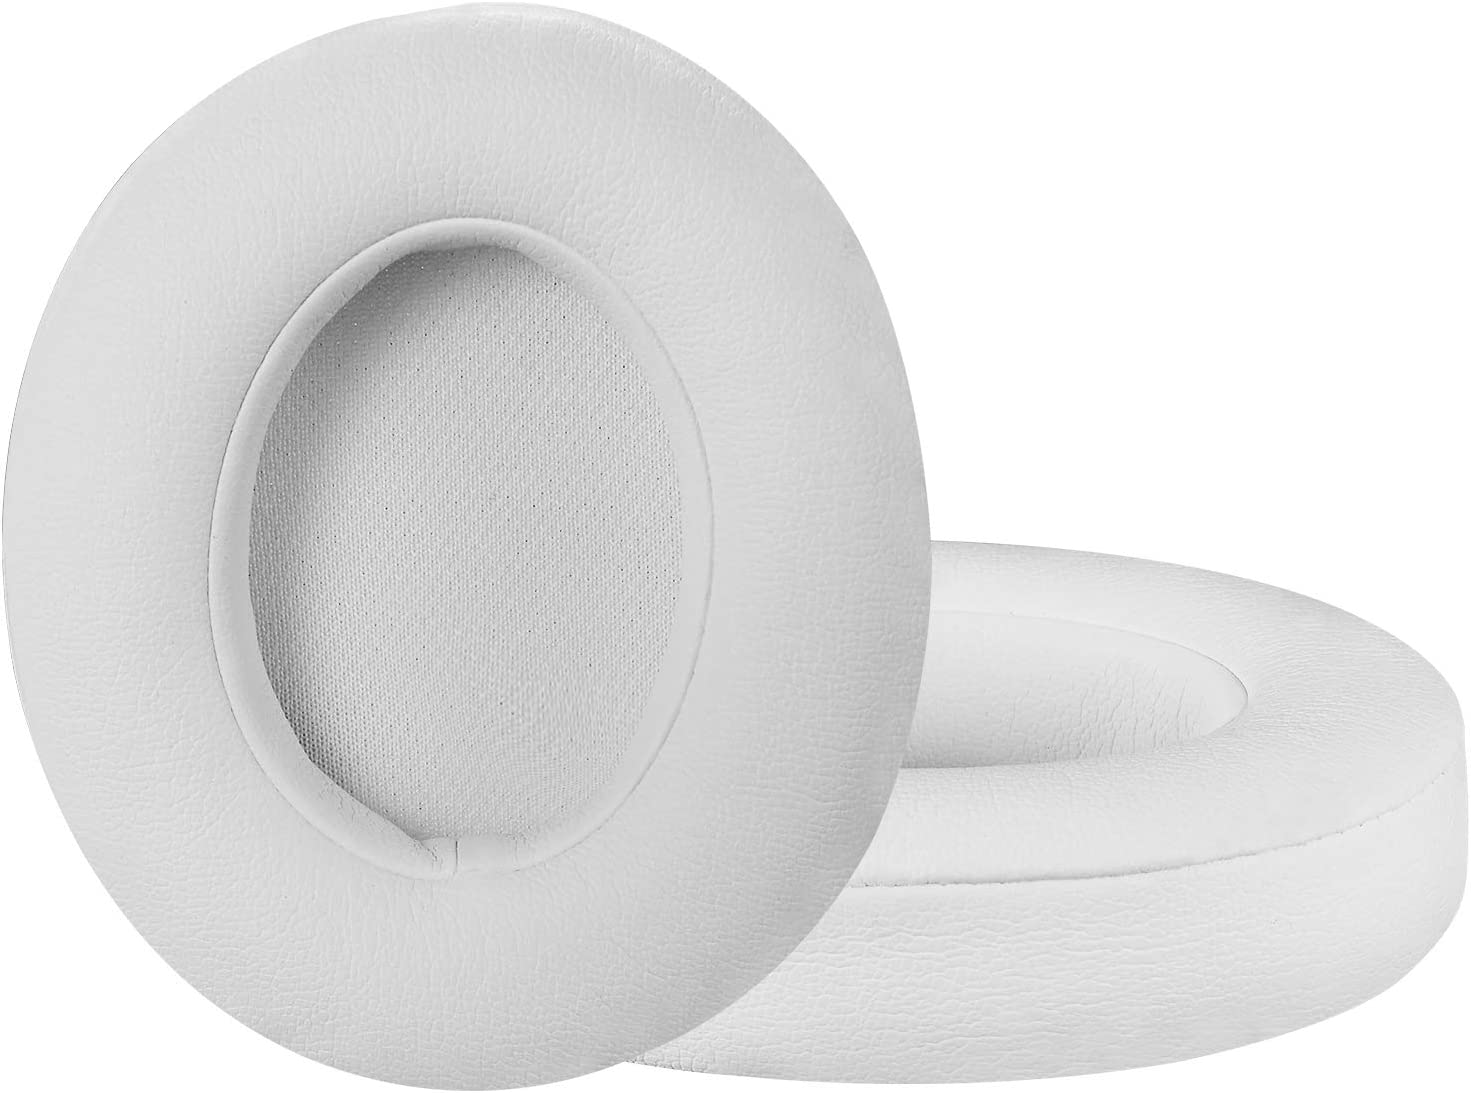 Beats Studio Replacement Ear Pads Cushions - Noise Isolation Adaptive Memory Foam | Upgraded Strong Adhesive with Easy Installation - Compatible with Studio 2 & 3 / Wired/Wireless,White